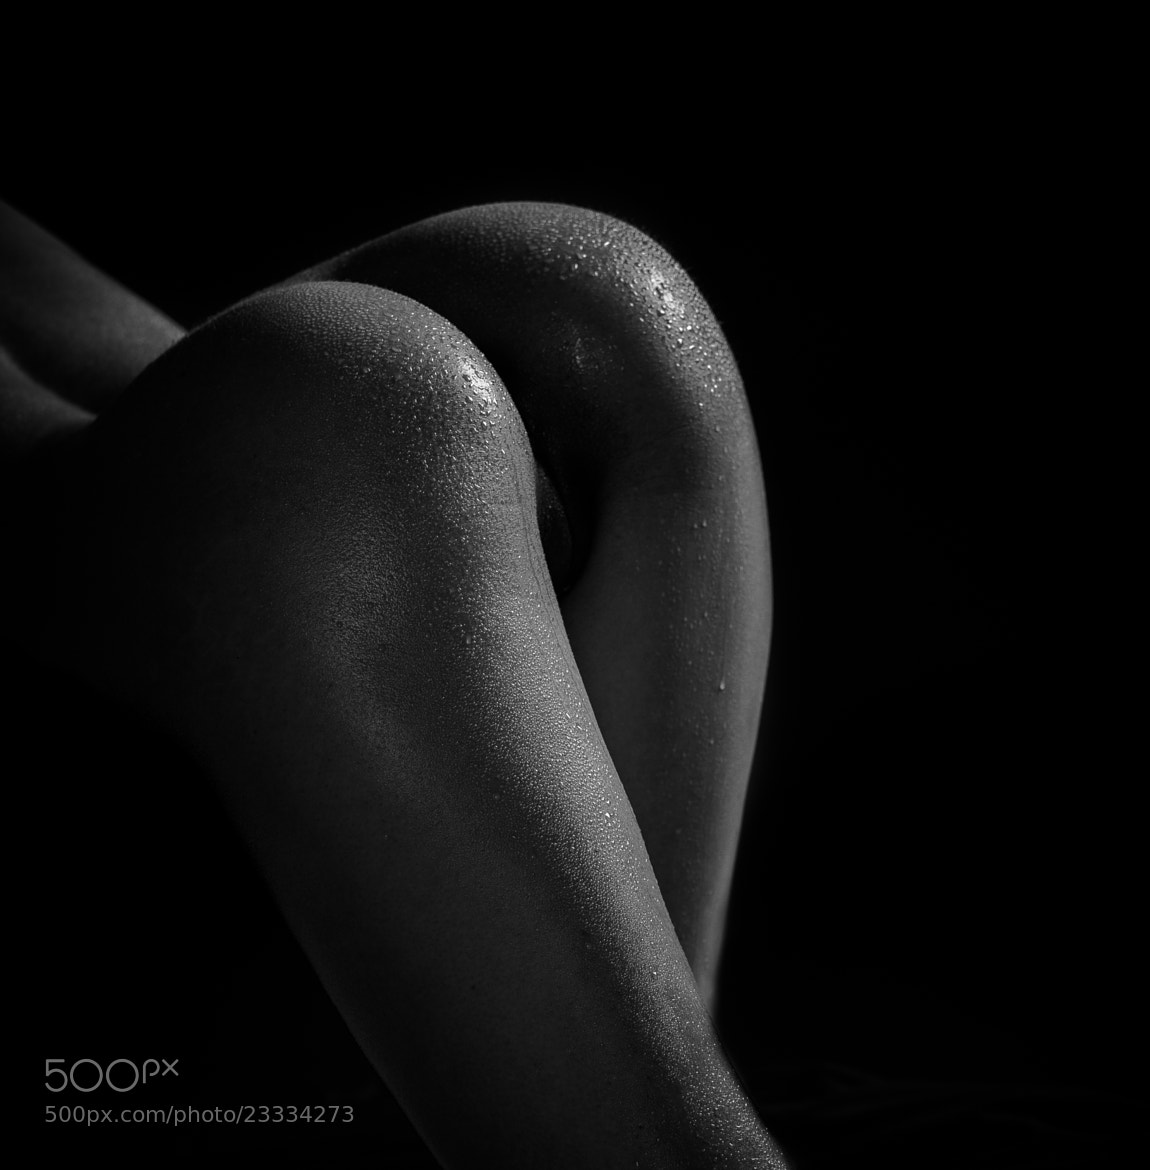 Photograph Buttocks by Axel Lauer on 500px